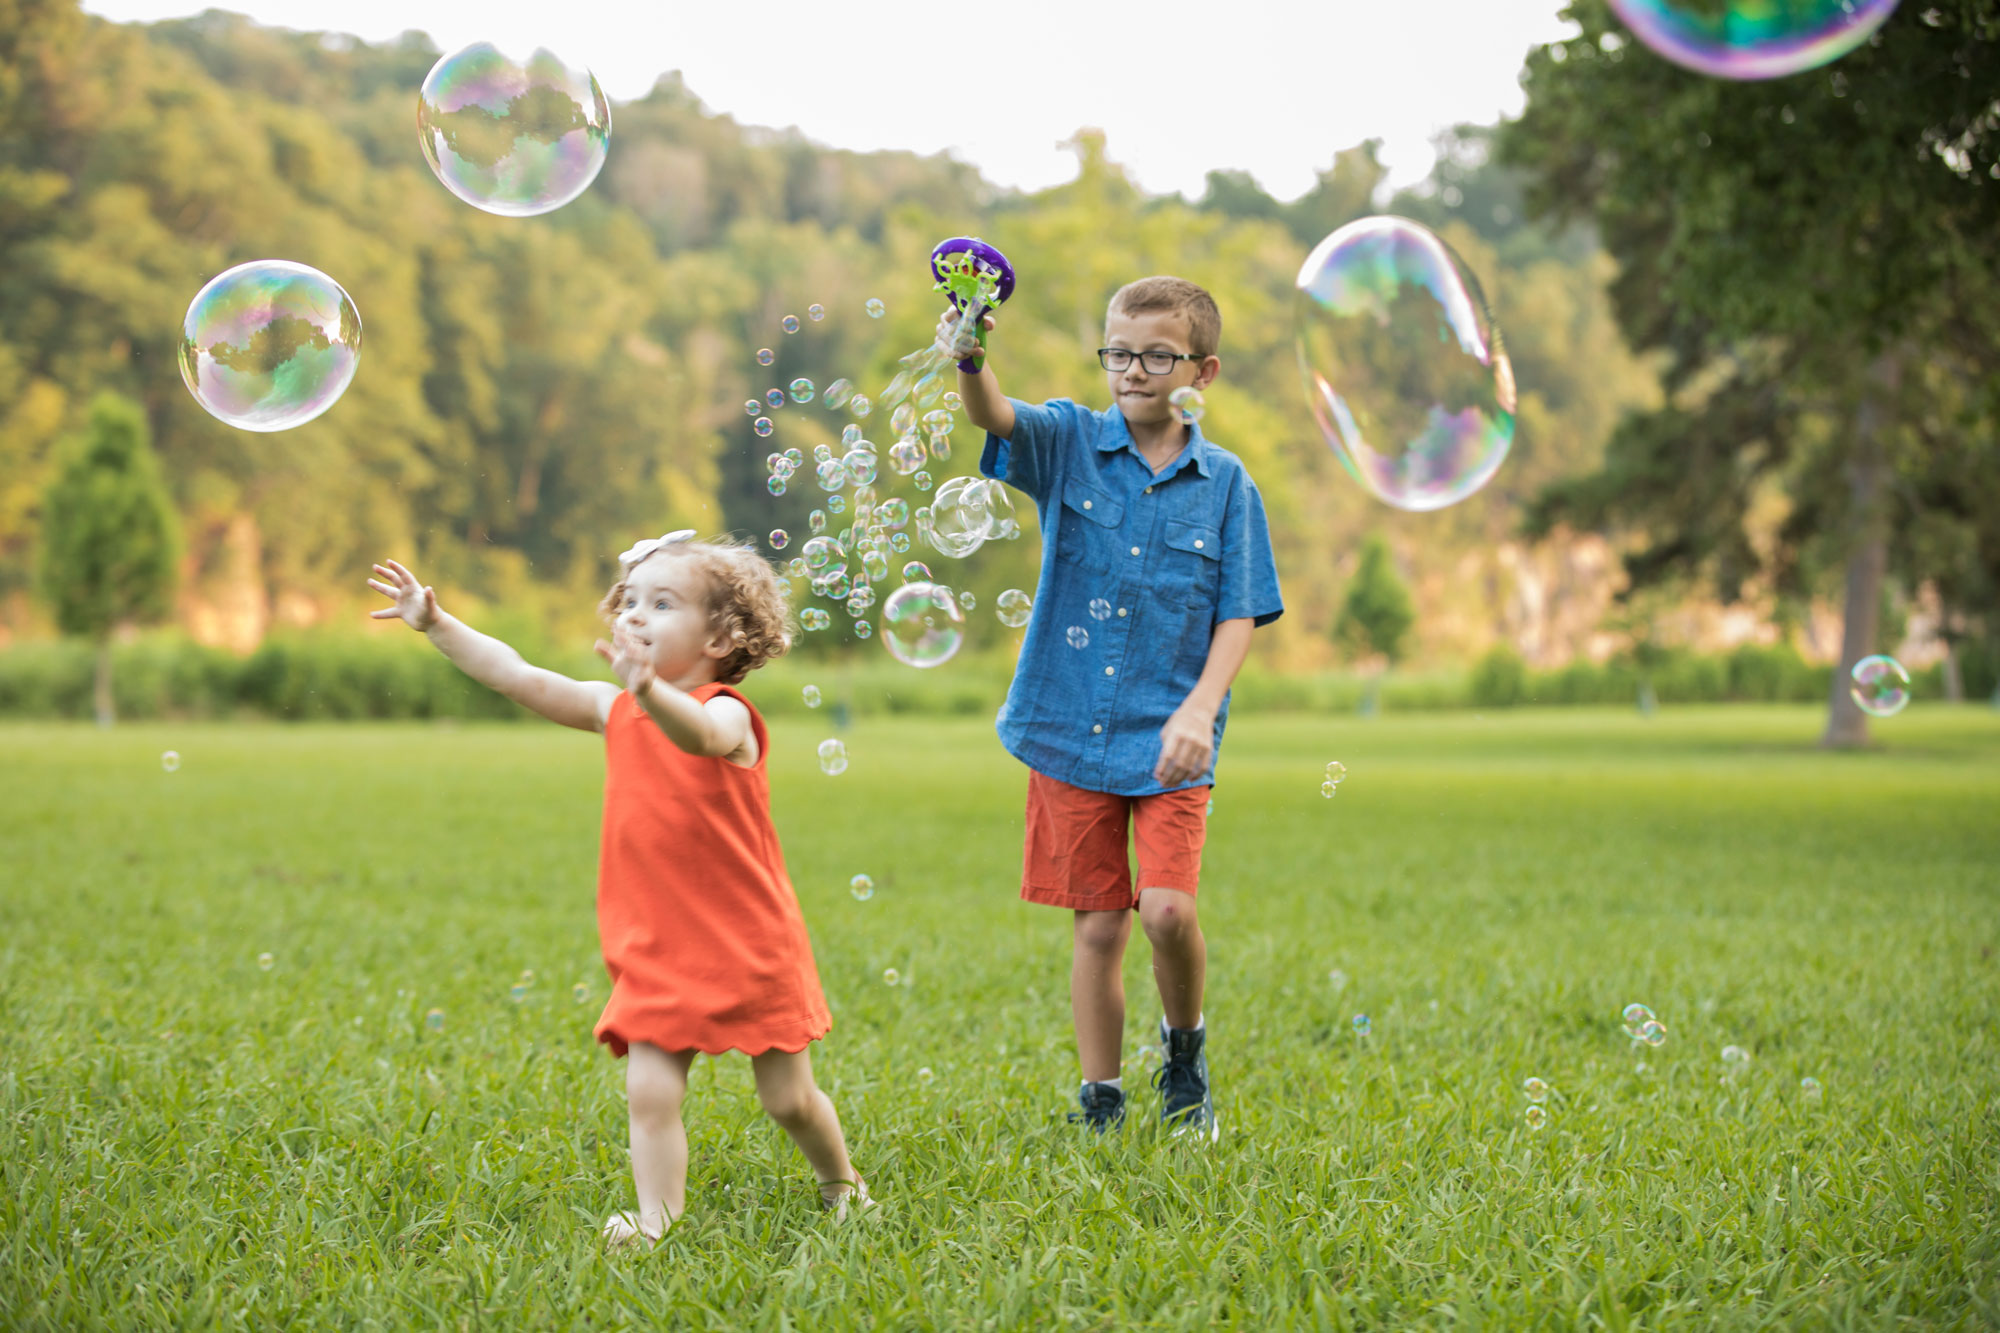 knoxville-family-reunion-photographer-bubbles.jpg